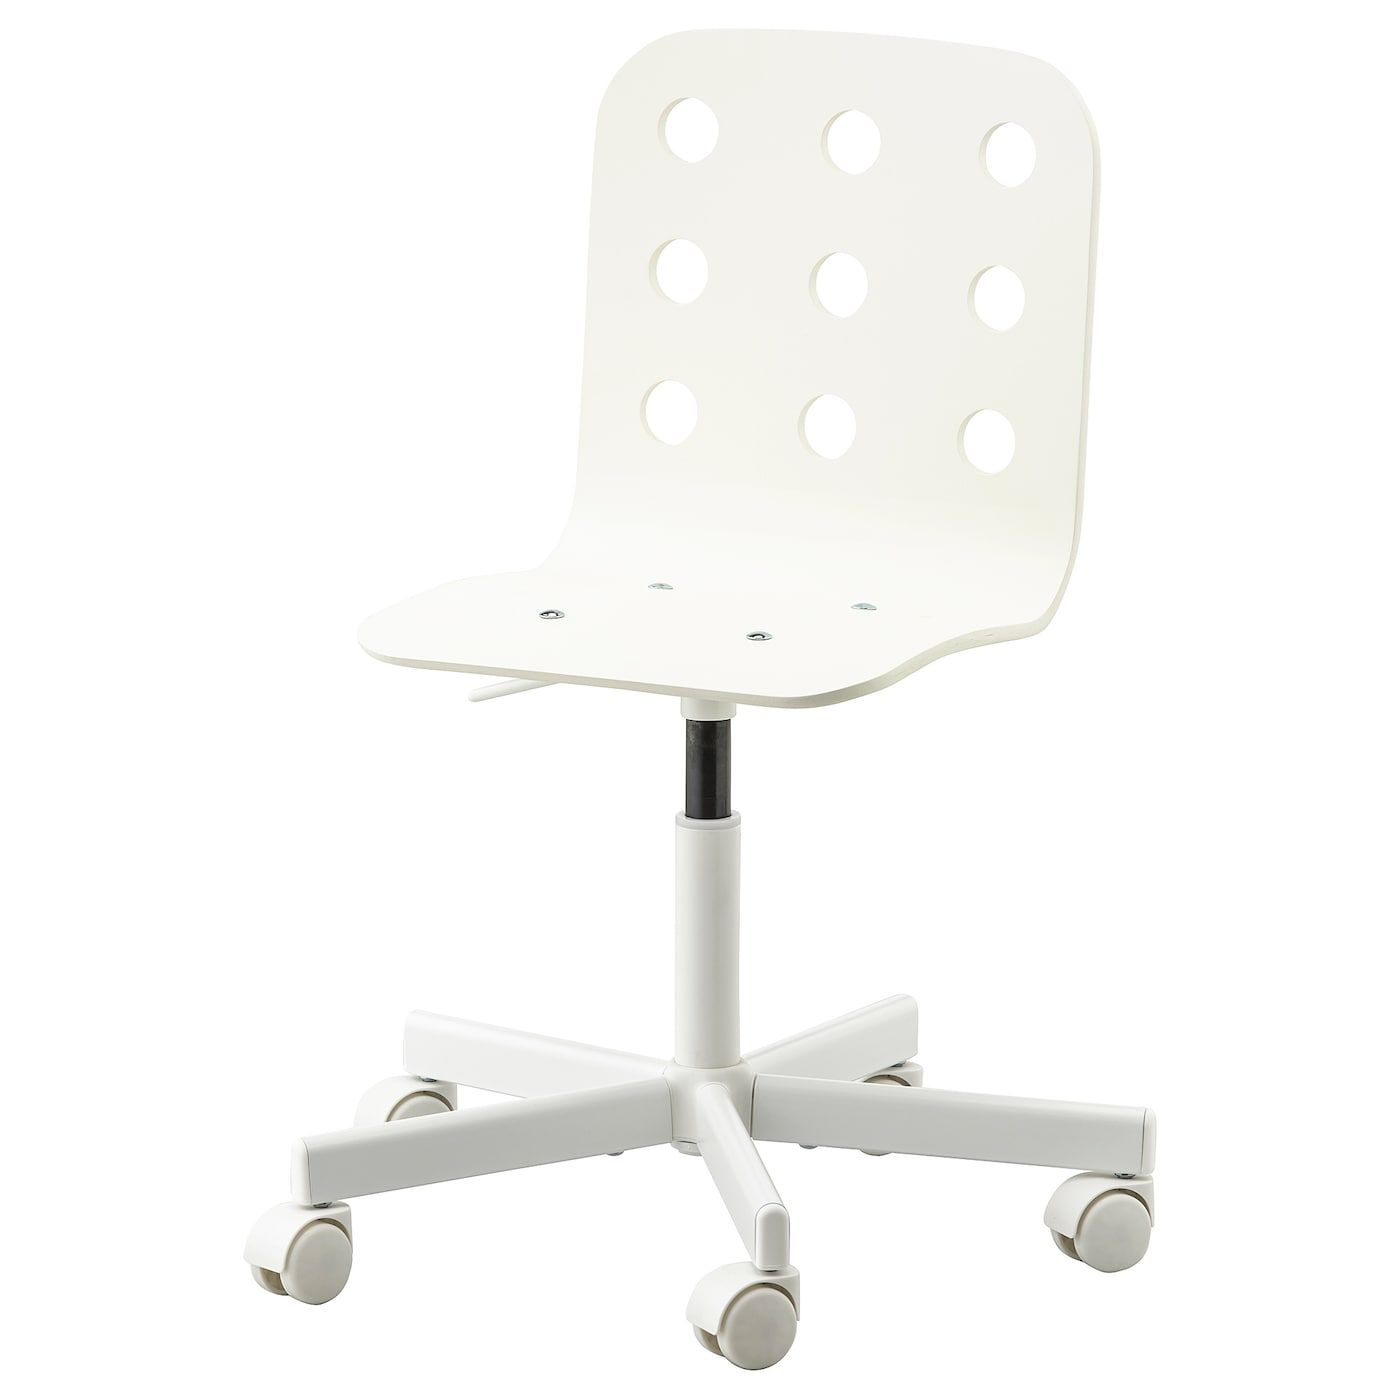 Jules Chaise De Bureau Enfant Blanc Site Web Officiel Ikea Childrens Desk And Chair Kids Desk Chair Desk Chair